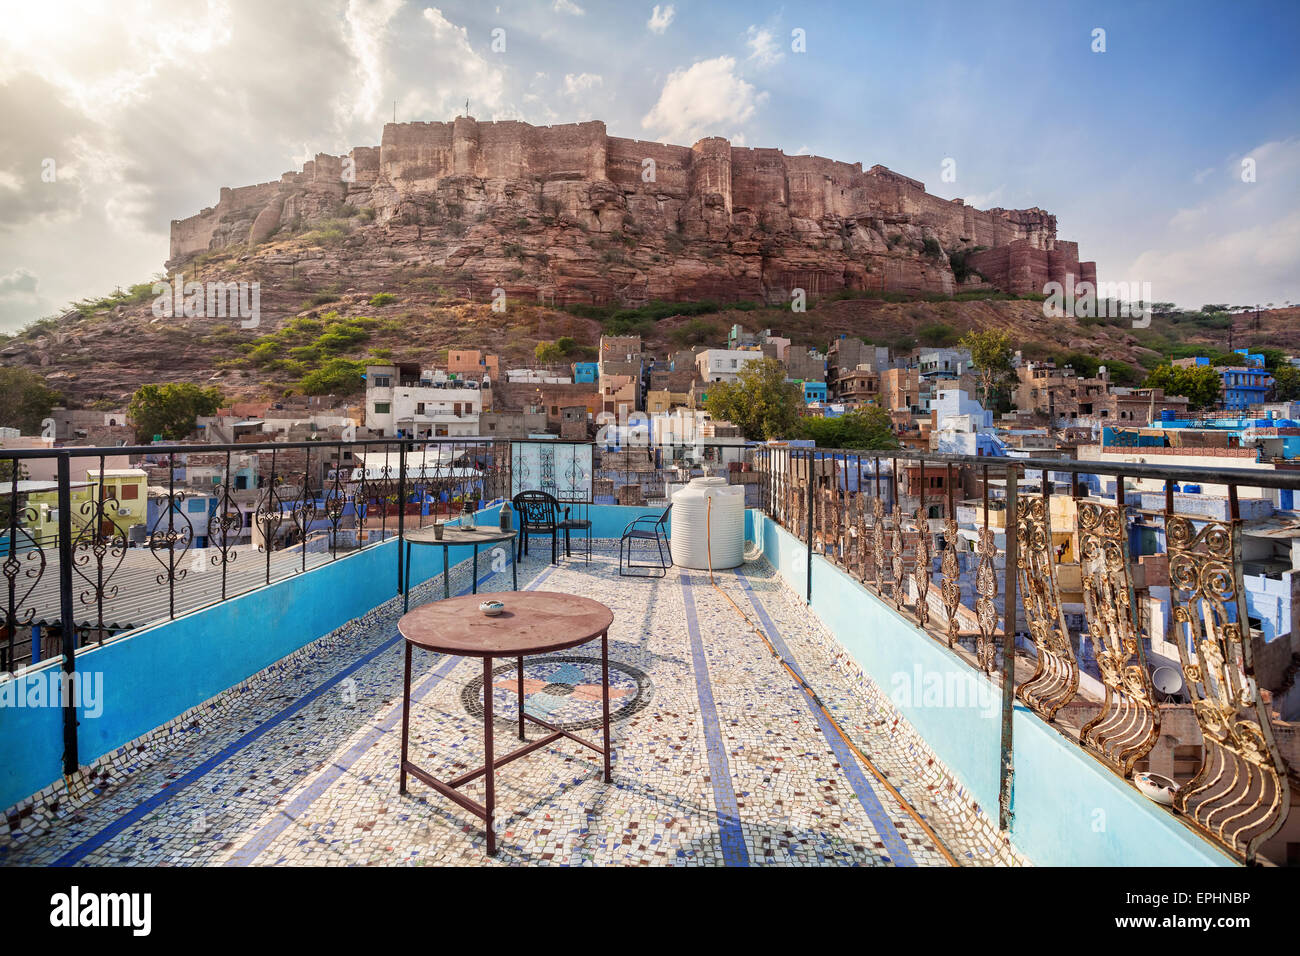 Rooftop cafe with view to Mehrangarh fort on the hill at cloudy sky in Jodhpur Blue city, Rajasthan, India - Stock Image